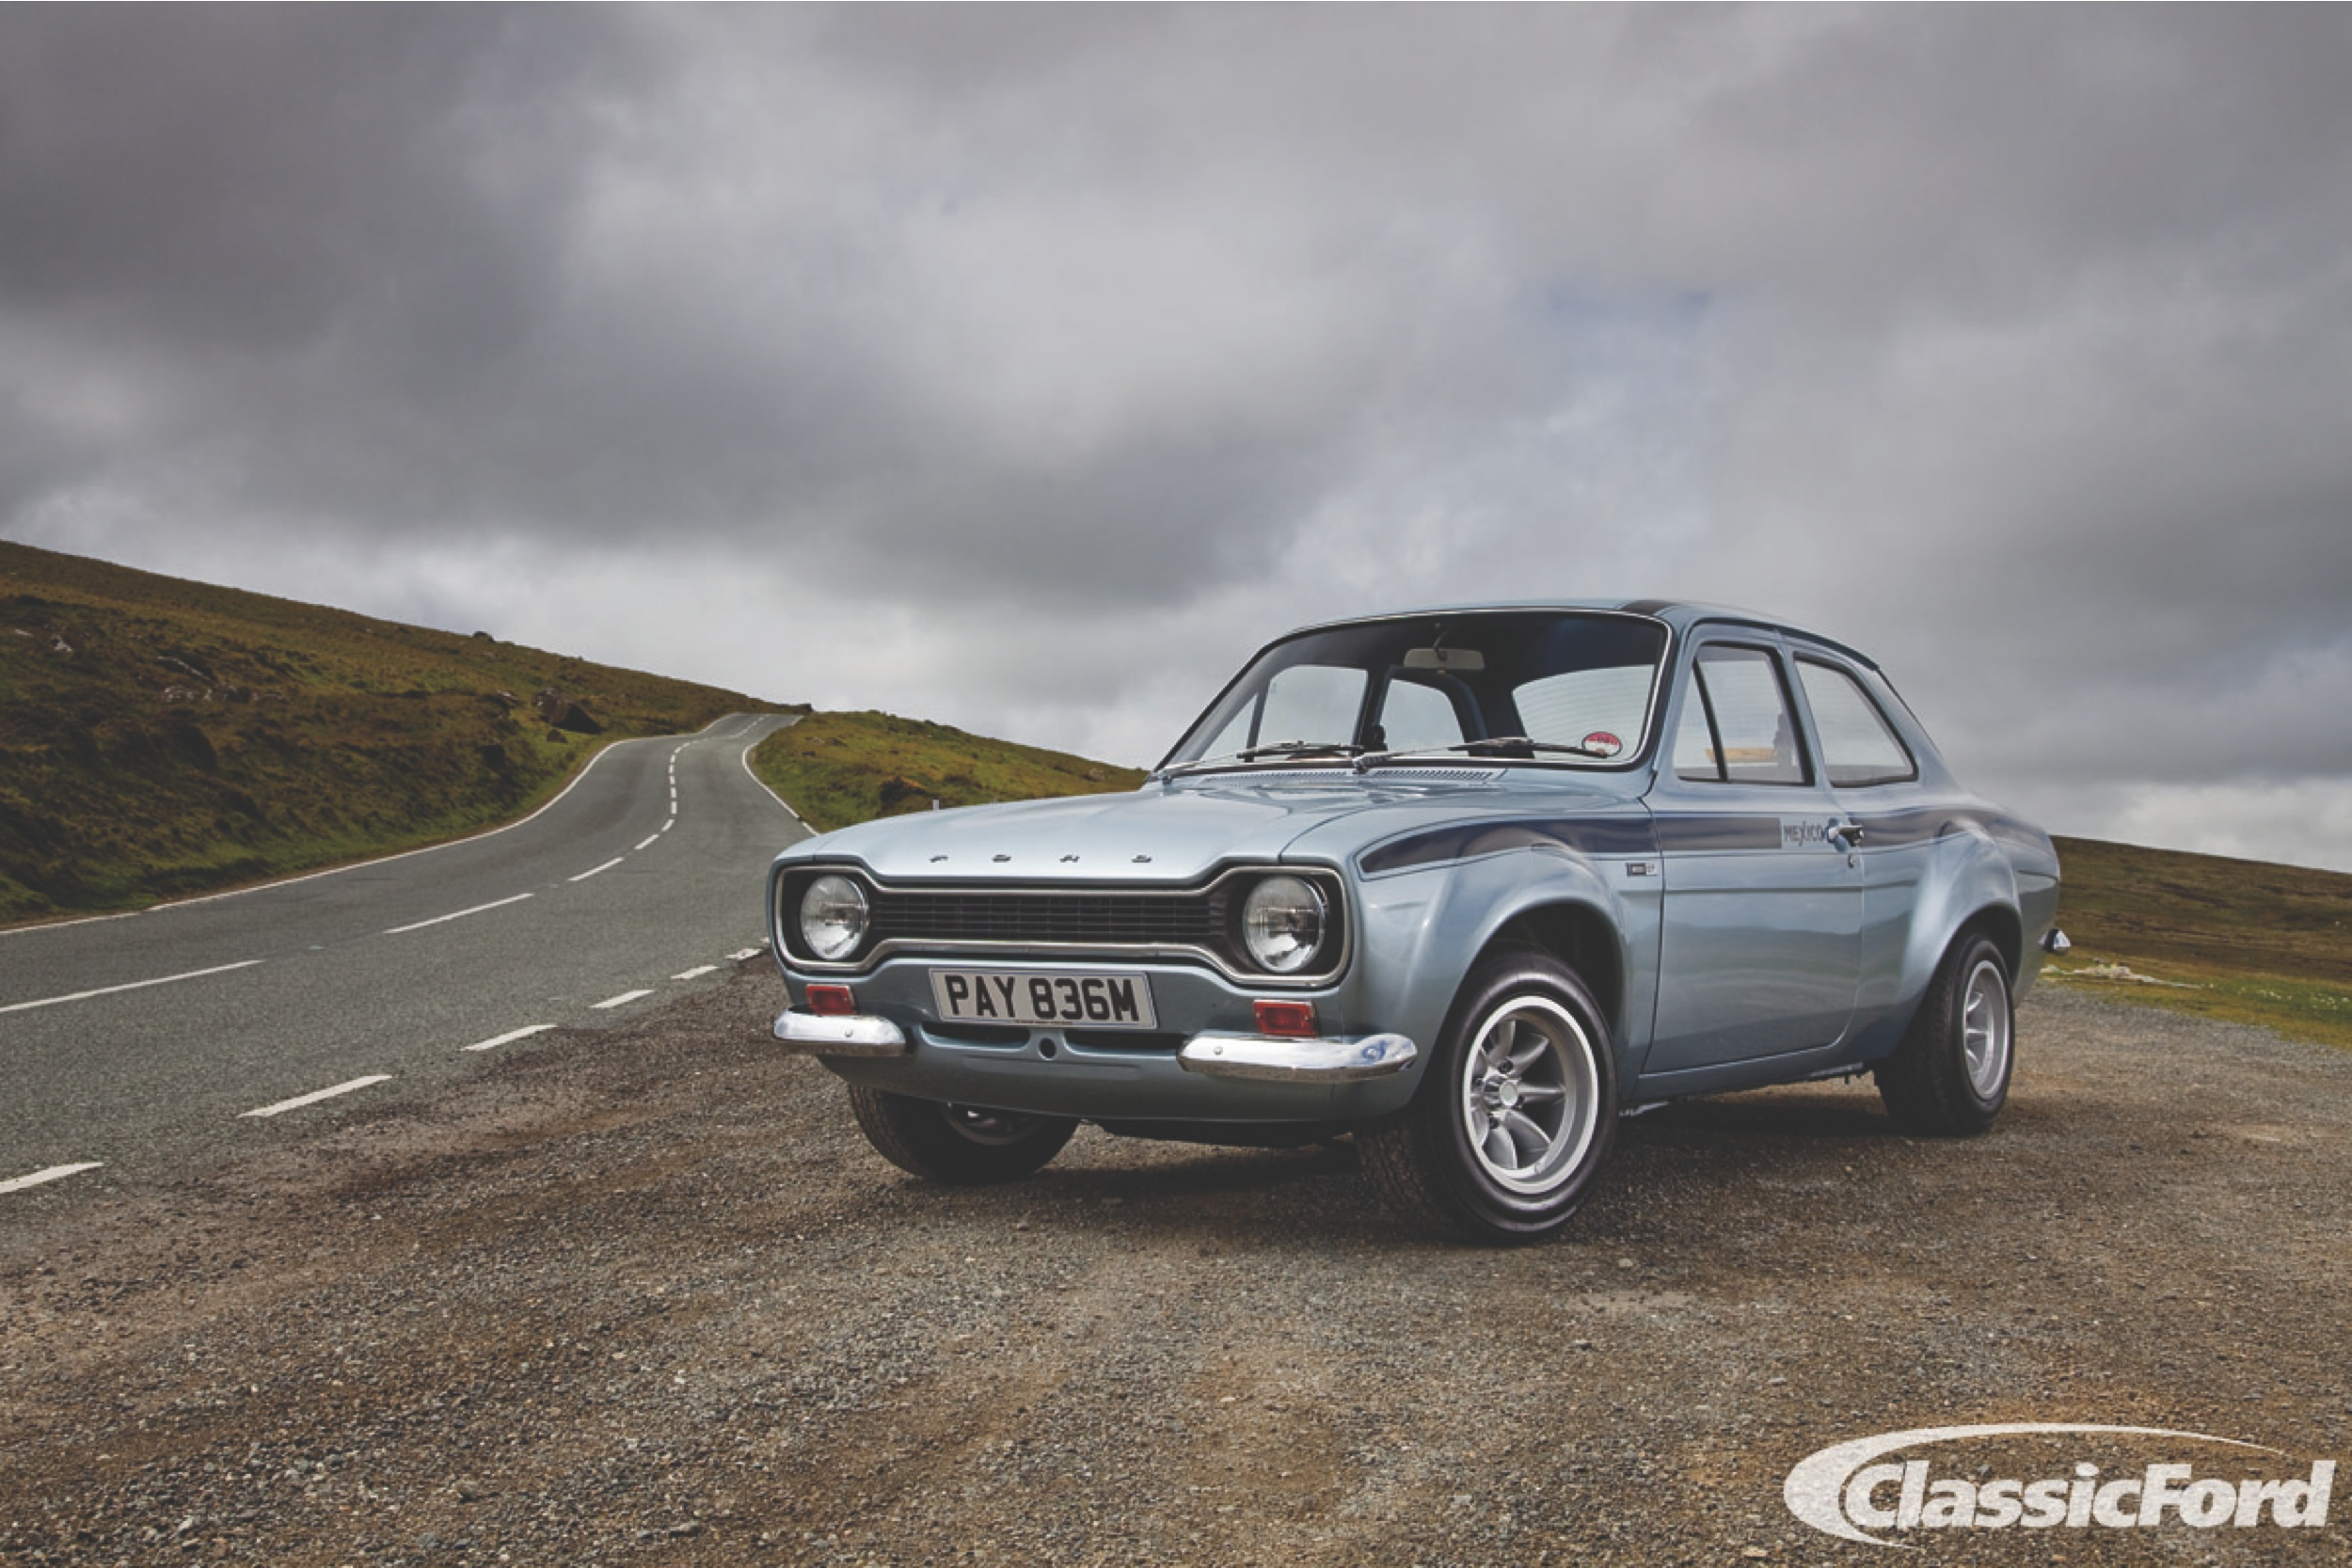 2500x1667 - Ford Escort Wallpapers 8